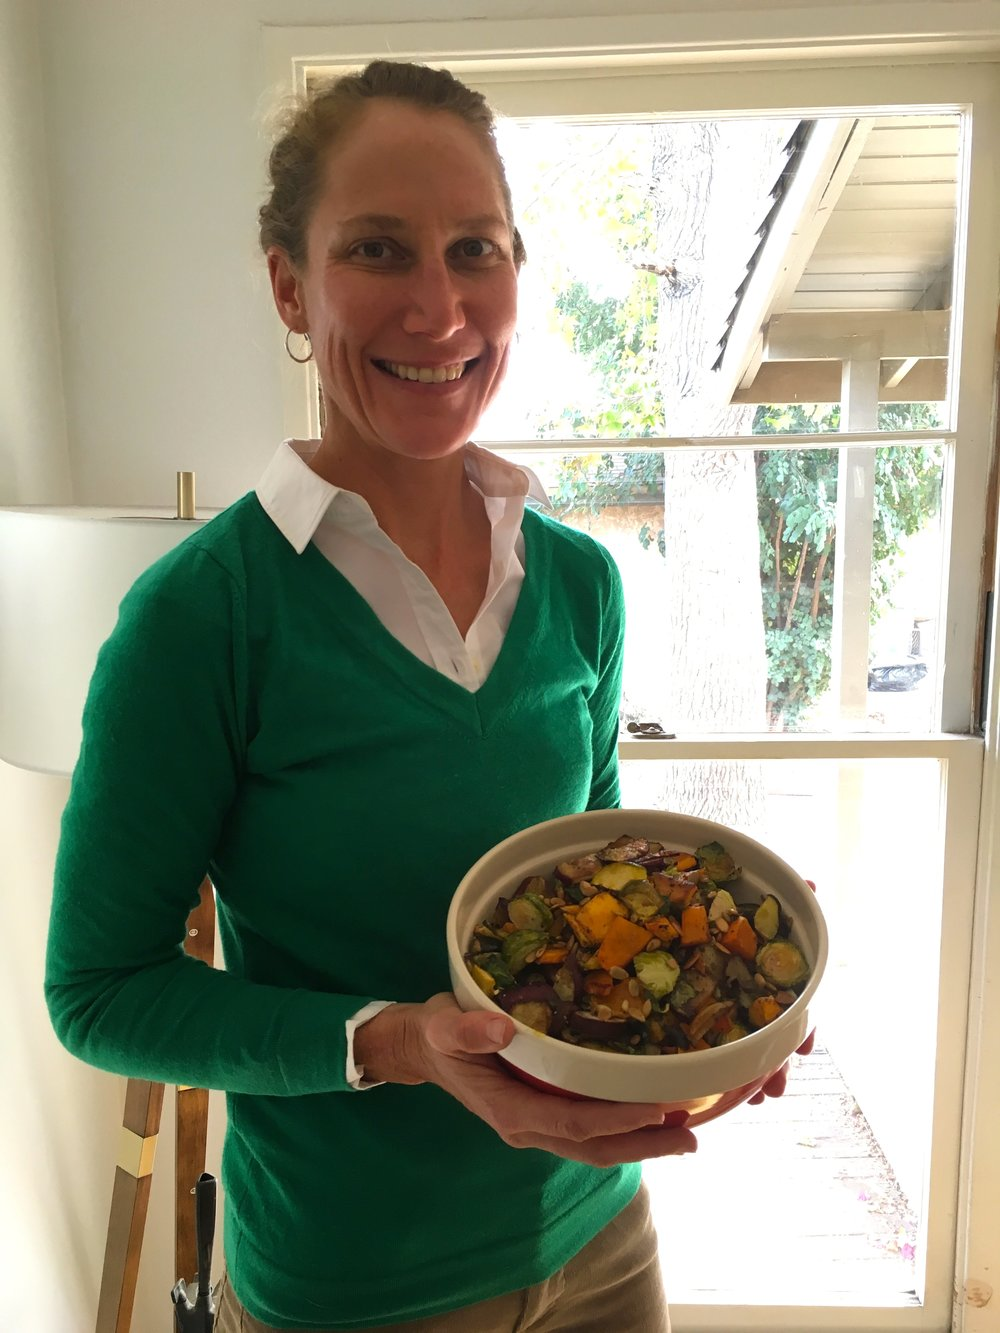 Yours truly with a bowl full of roasted veggies:Murasaki sweet potatoes, butternut squash, acorn squash, brussel sprouts, almonds, sage, and pepitas.